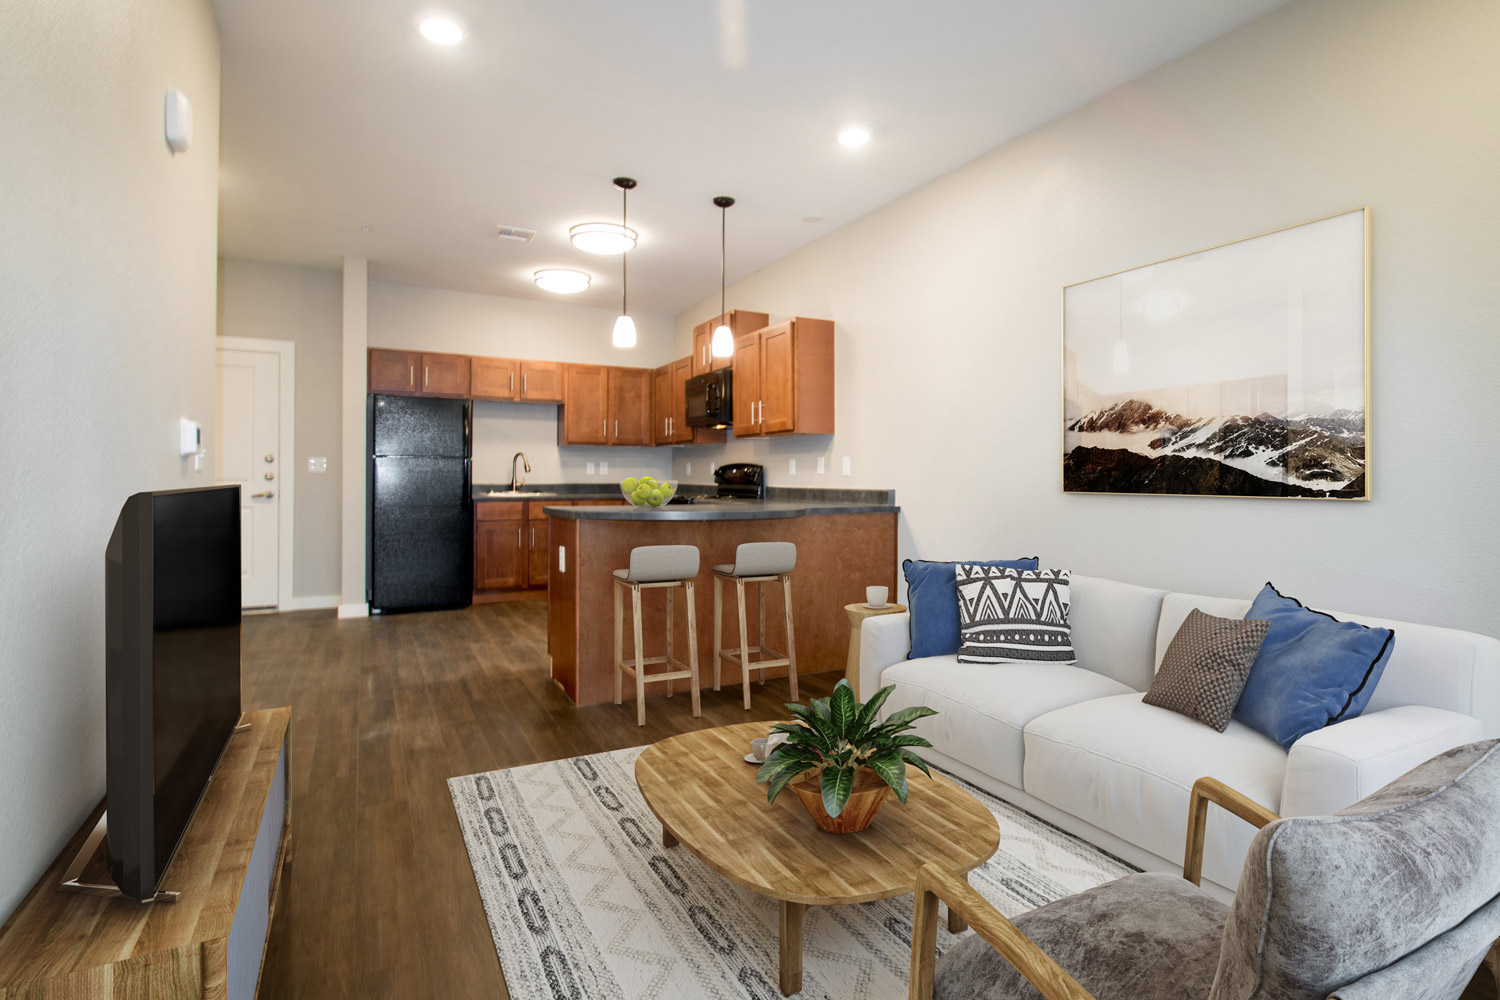 Open Floor Plans at The Residence at Alsbury Apartments in Burleson, Texas